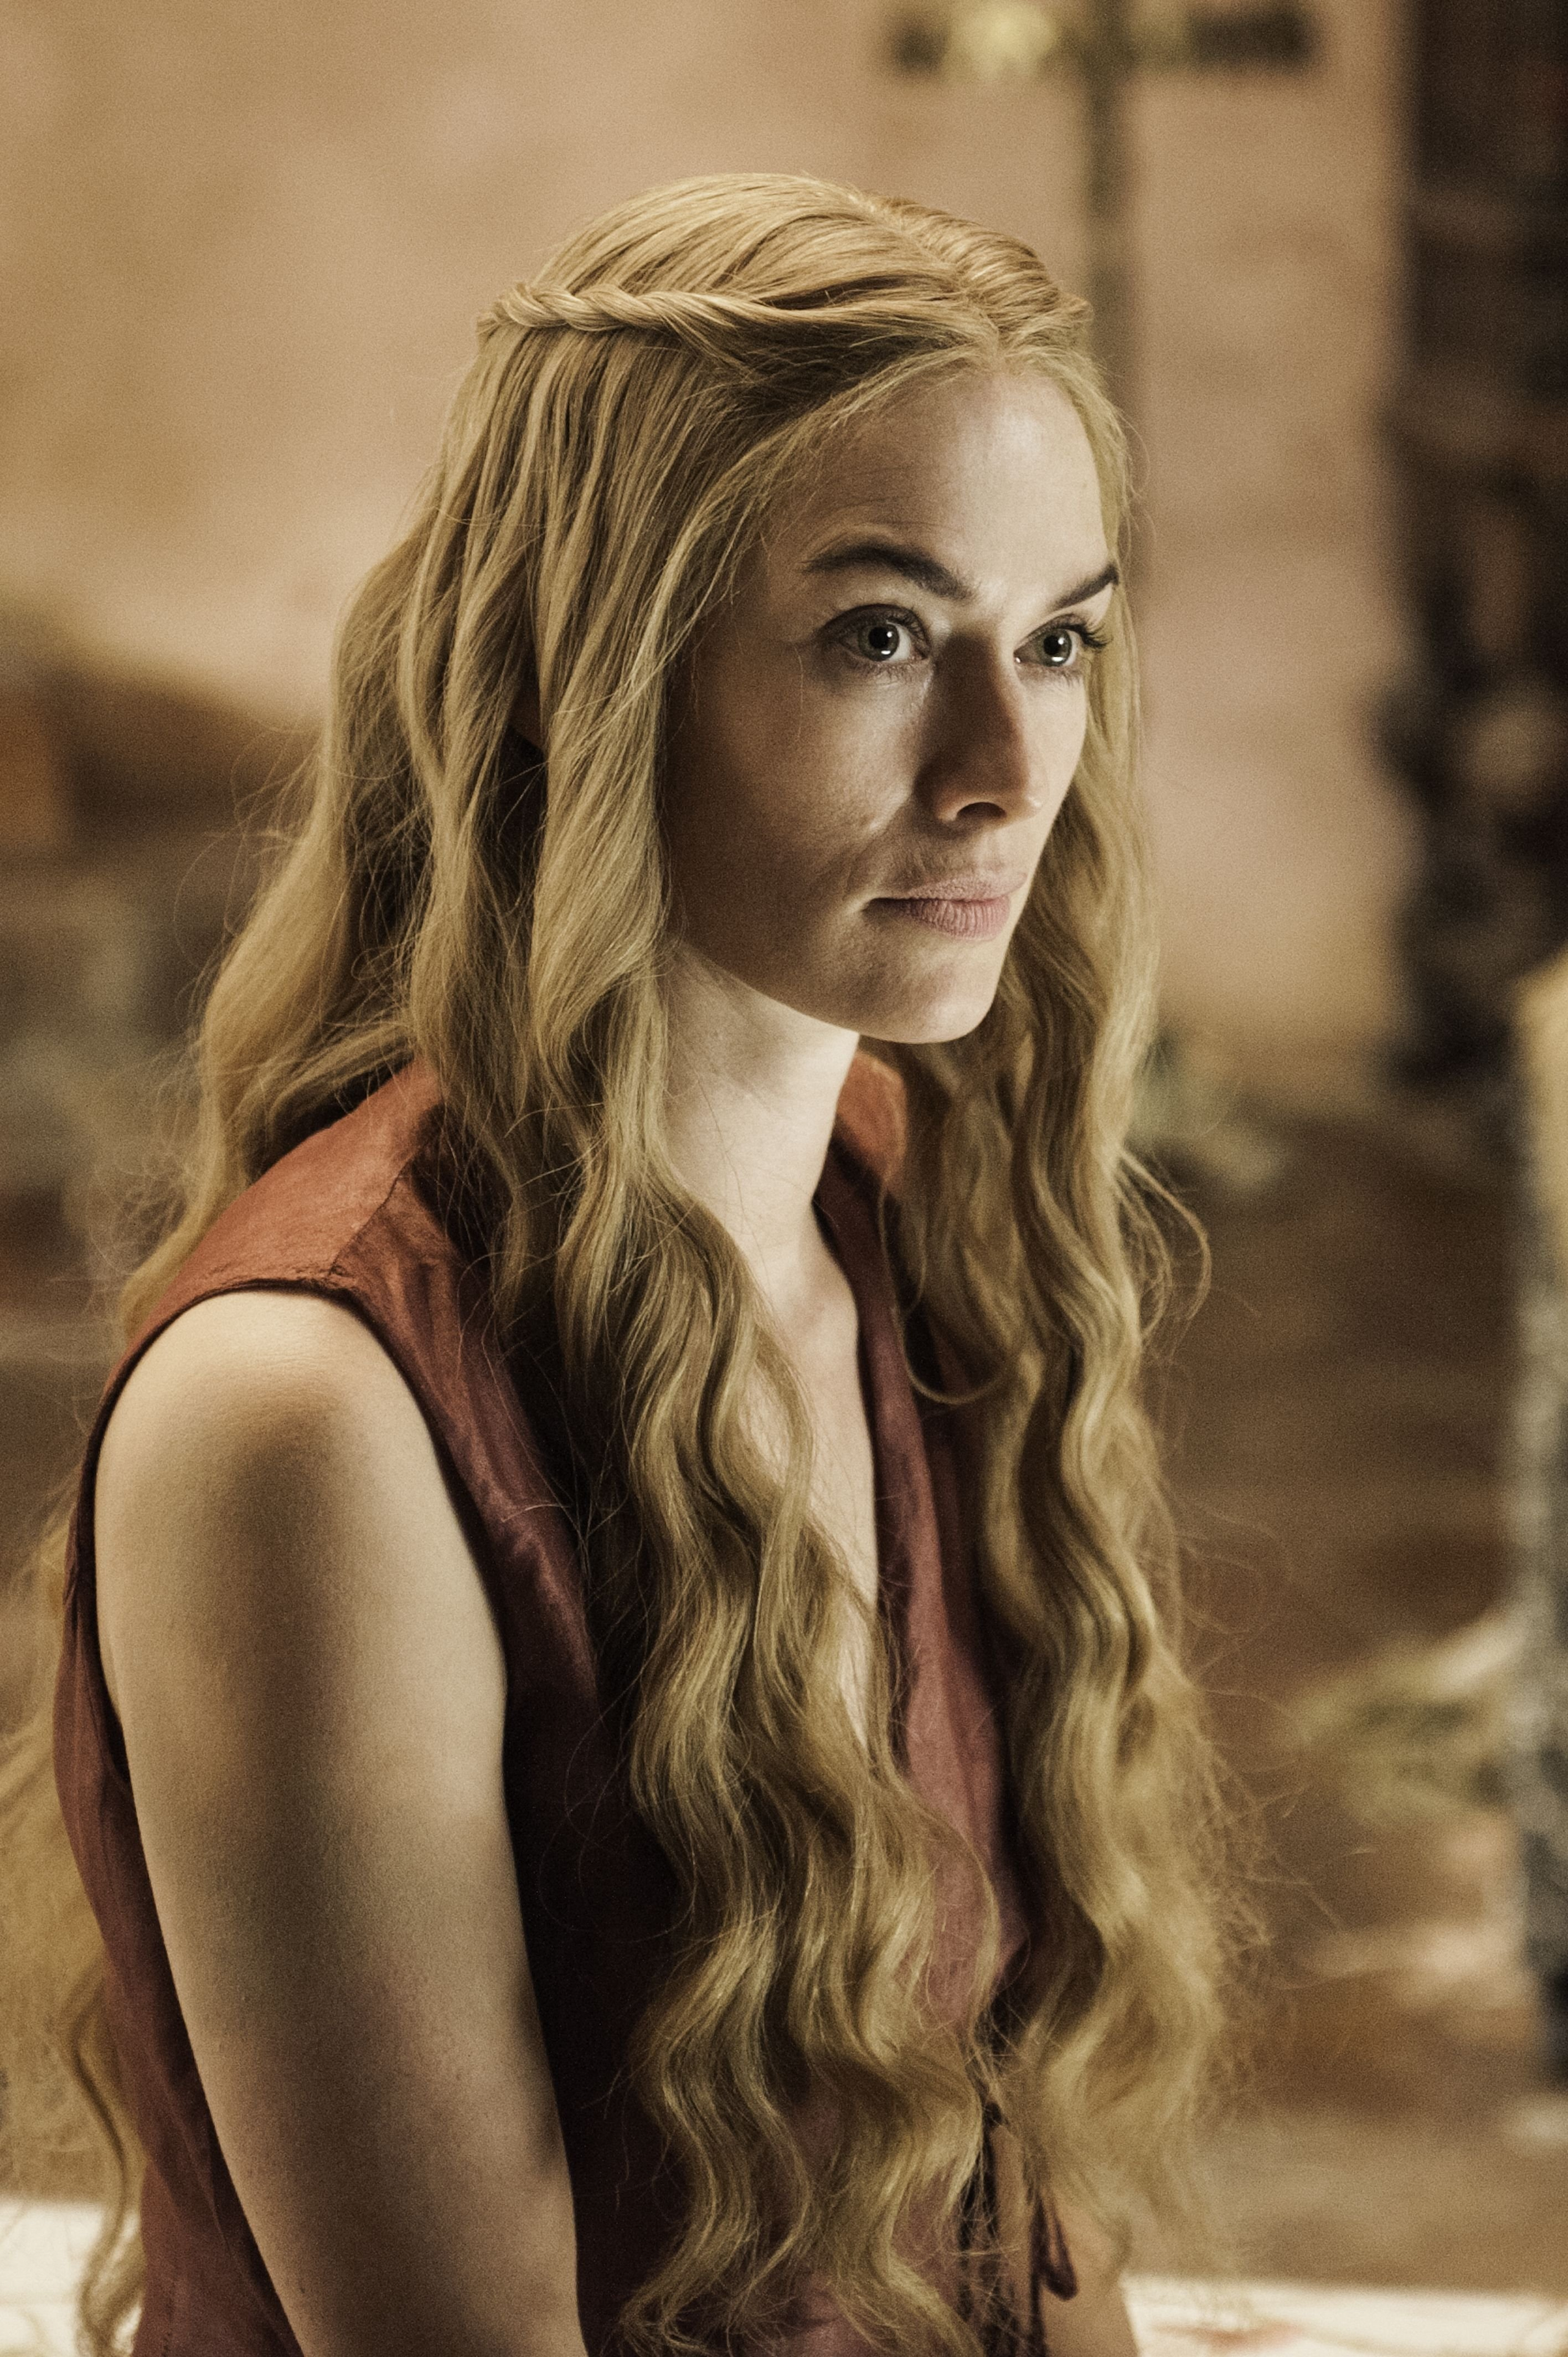 Cersei Lannister: A Defense of the Game of Thrones